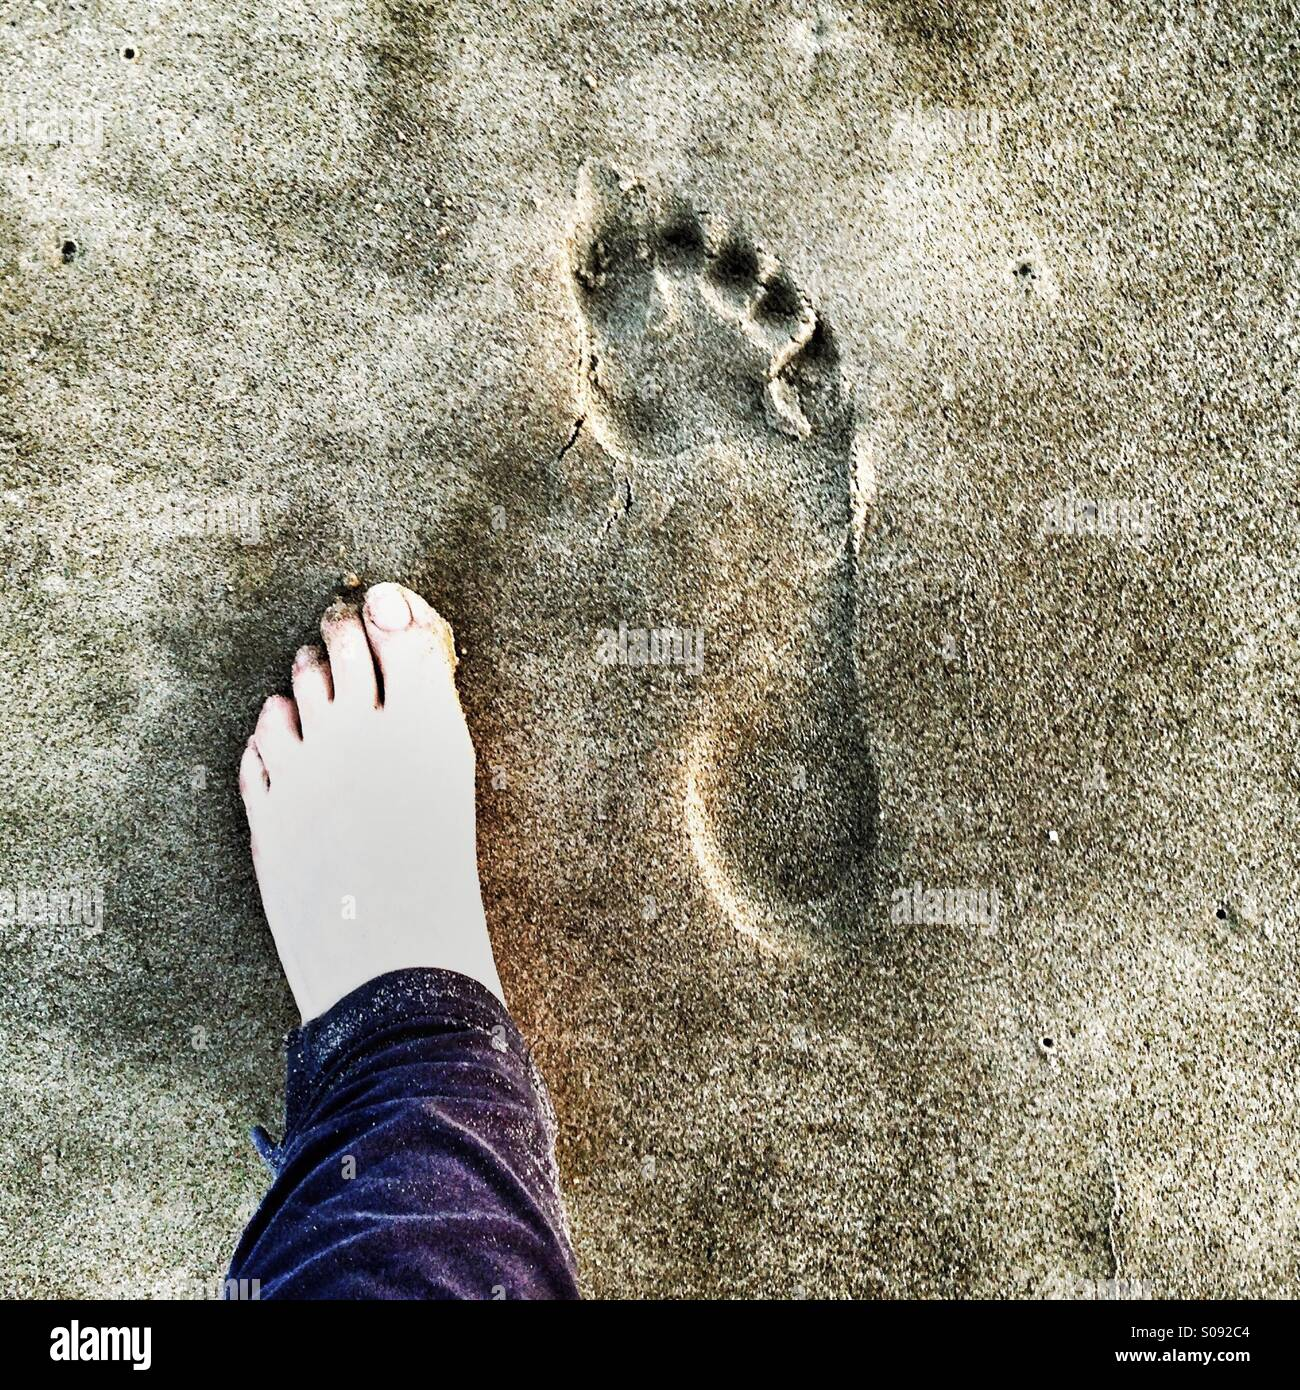 Left Barefoot, Right Footprint On The Sand - Stock Image